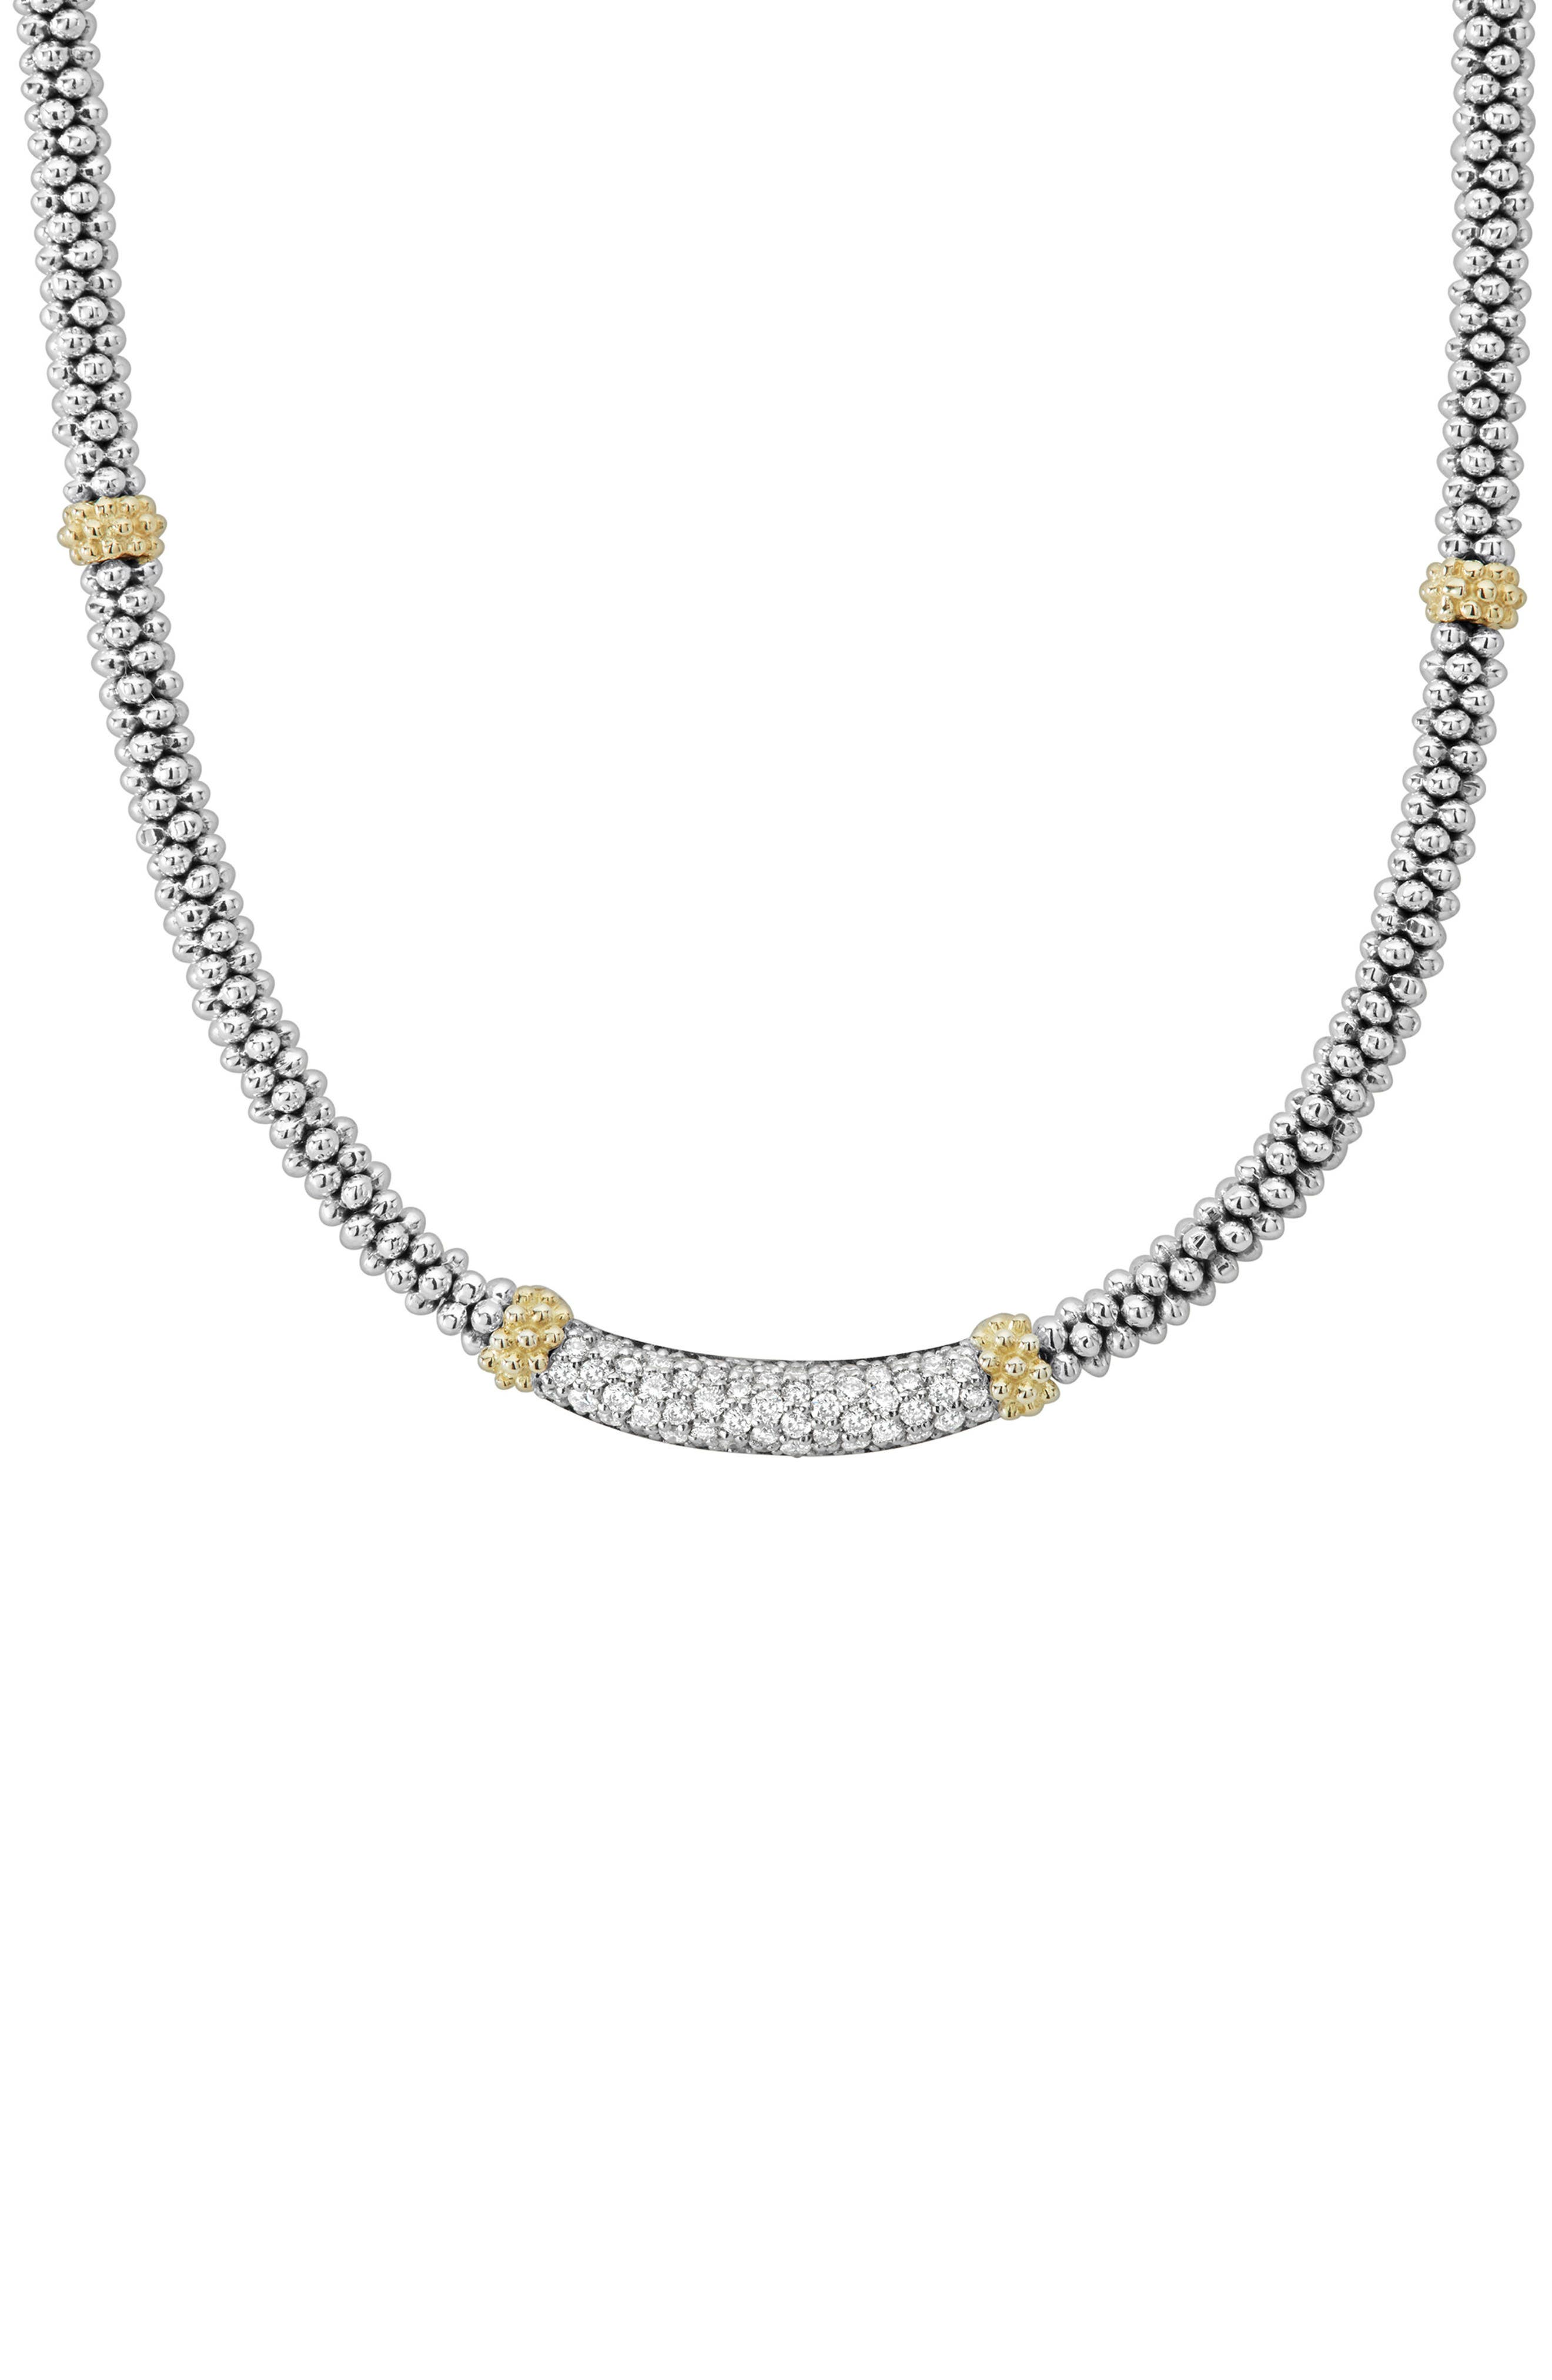 Lux Diamond Rope Necklace,                             Main thumbnail 1, color,                             SILVER/ DIAMOND